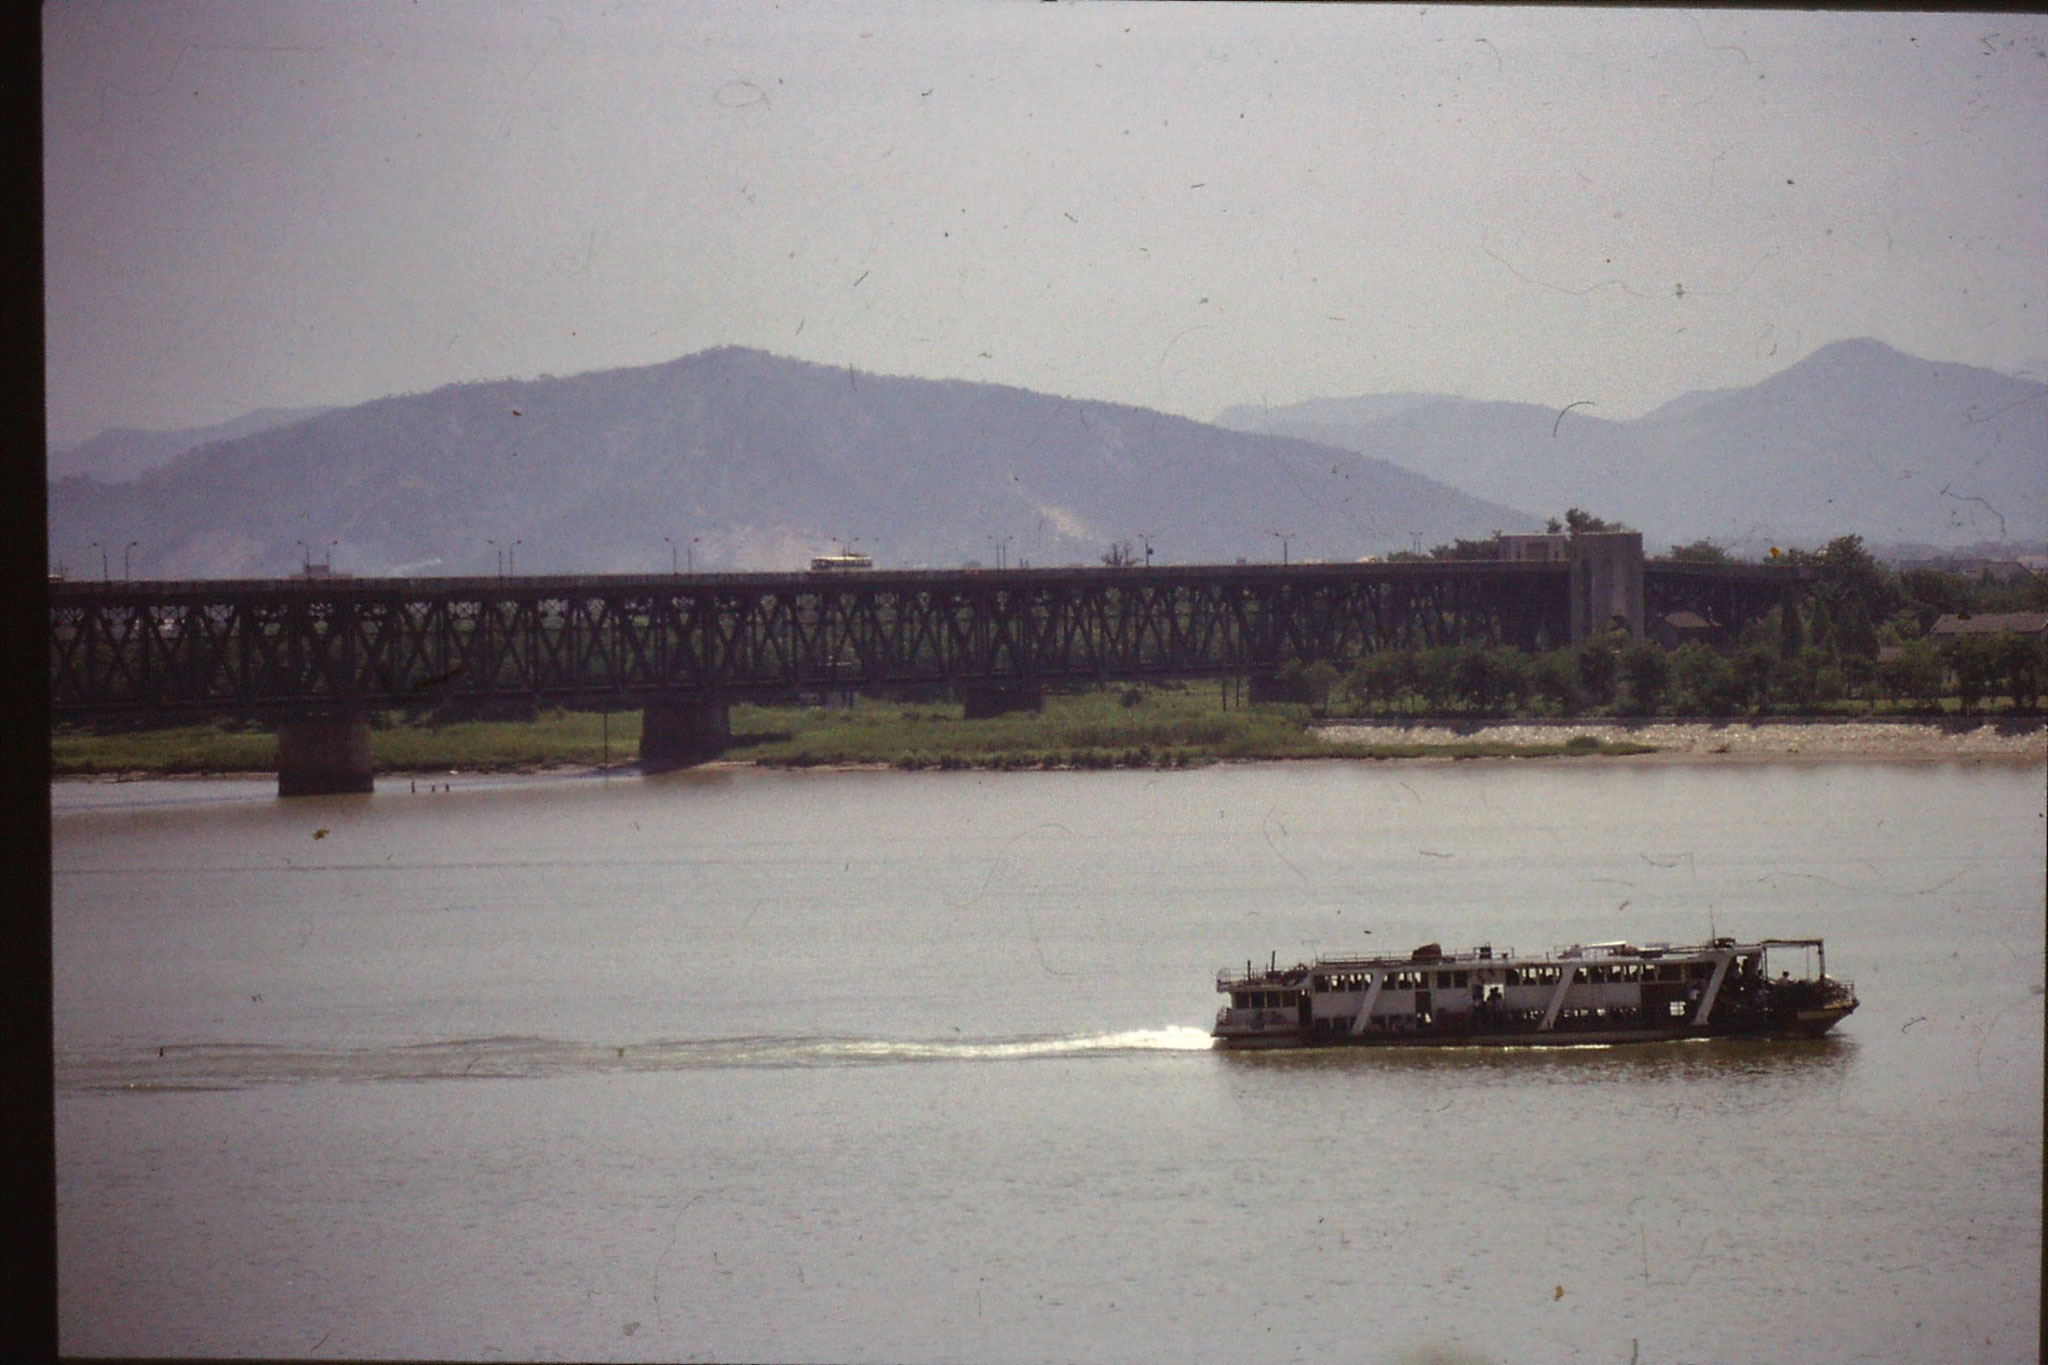 8/6/1989: 11: Hangzhou, end of bridge over Qiantang